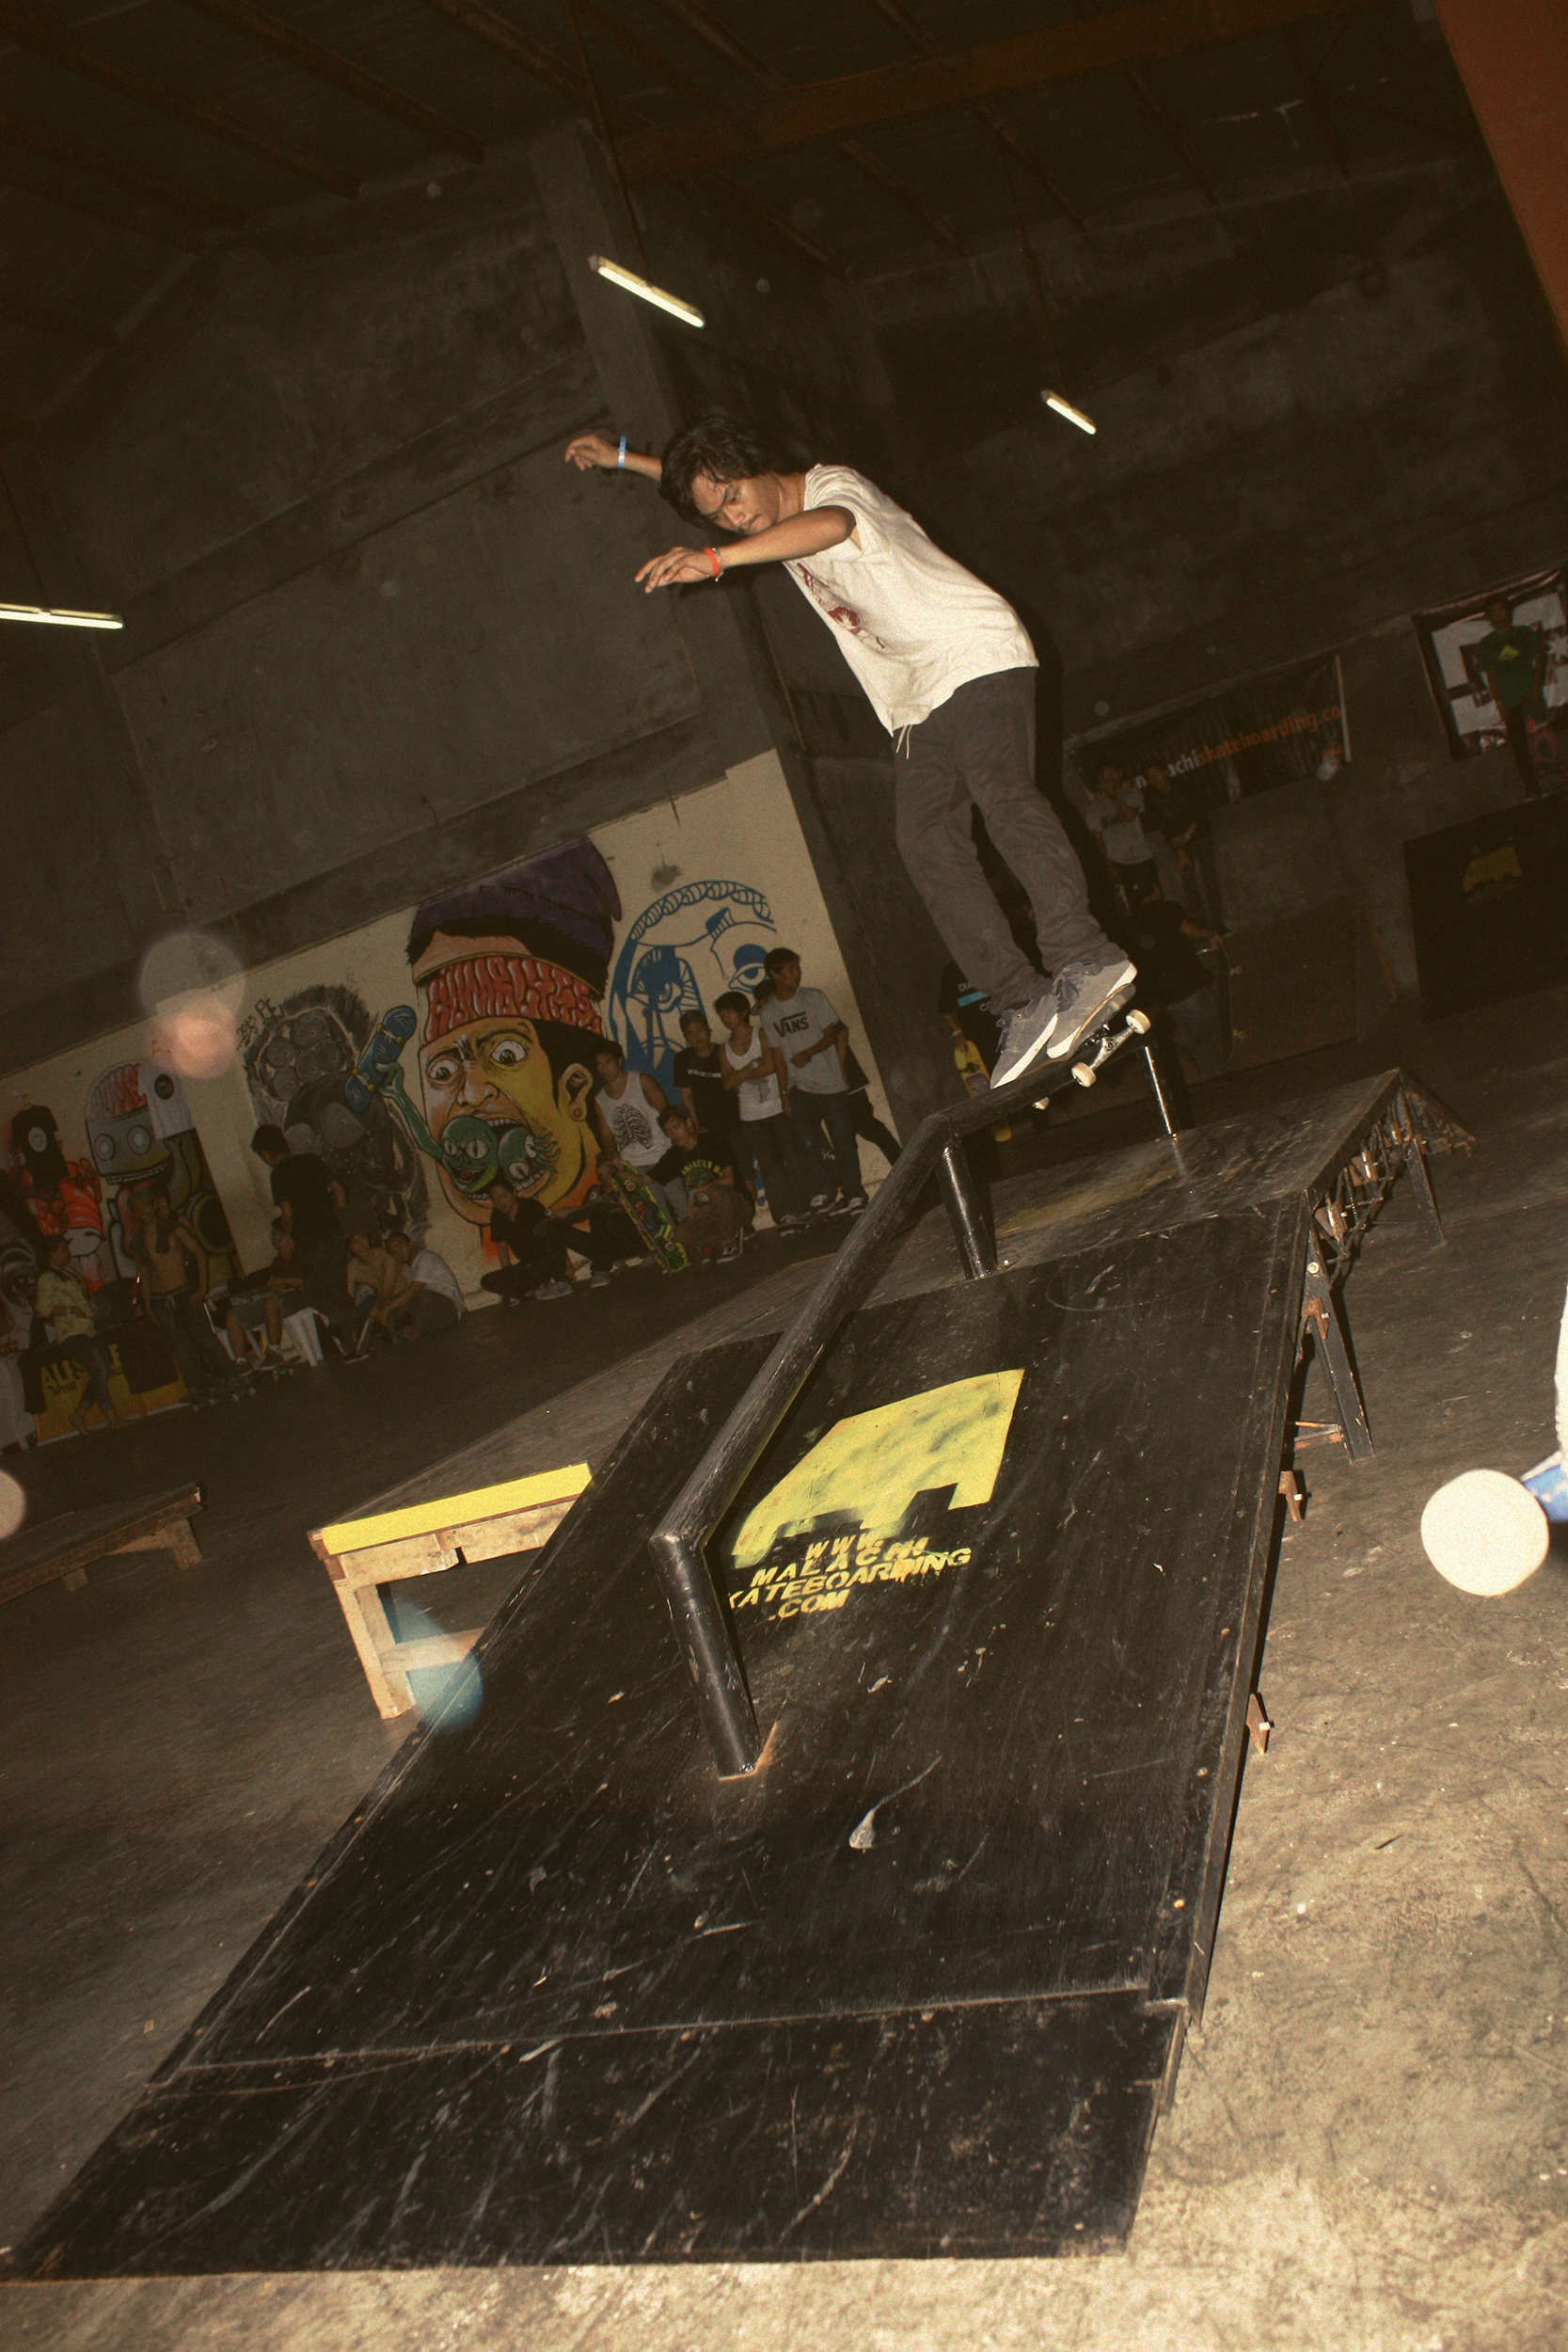 WIP COVERAGE: WIP SK8 @ THE FLOW BY MALACHI SKATEBOARDING ...